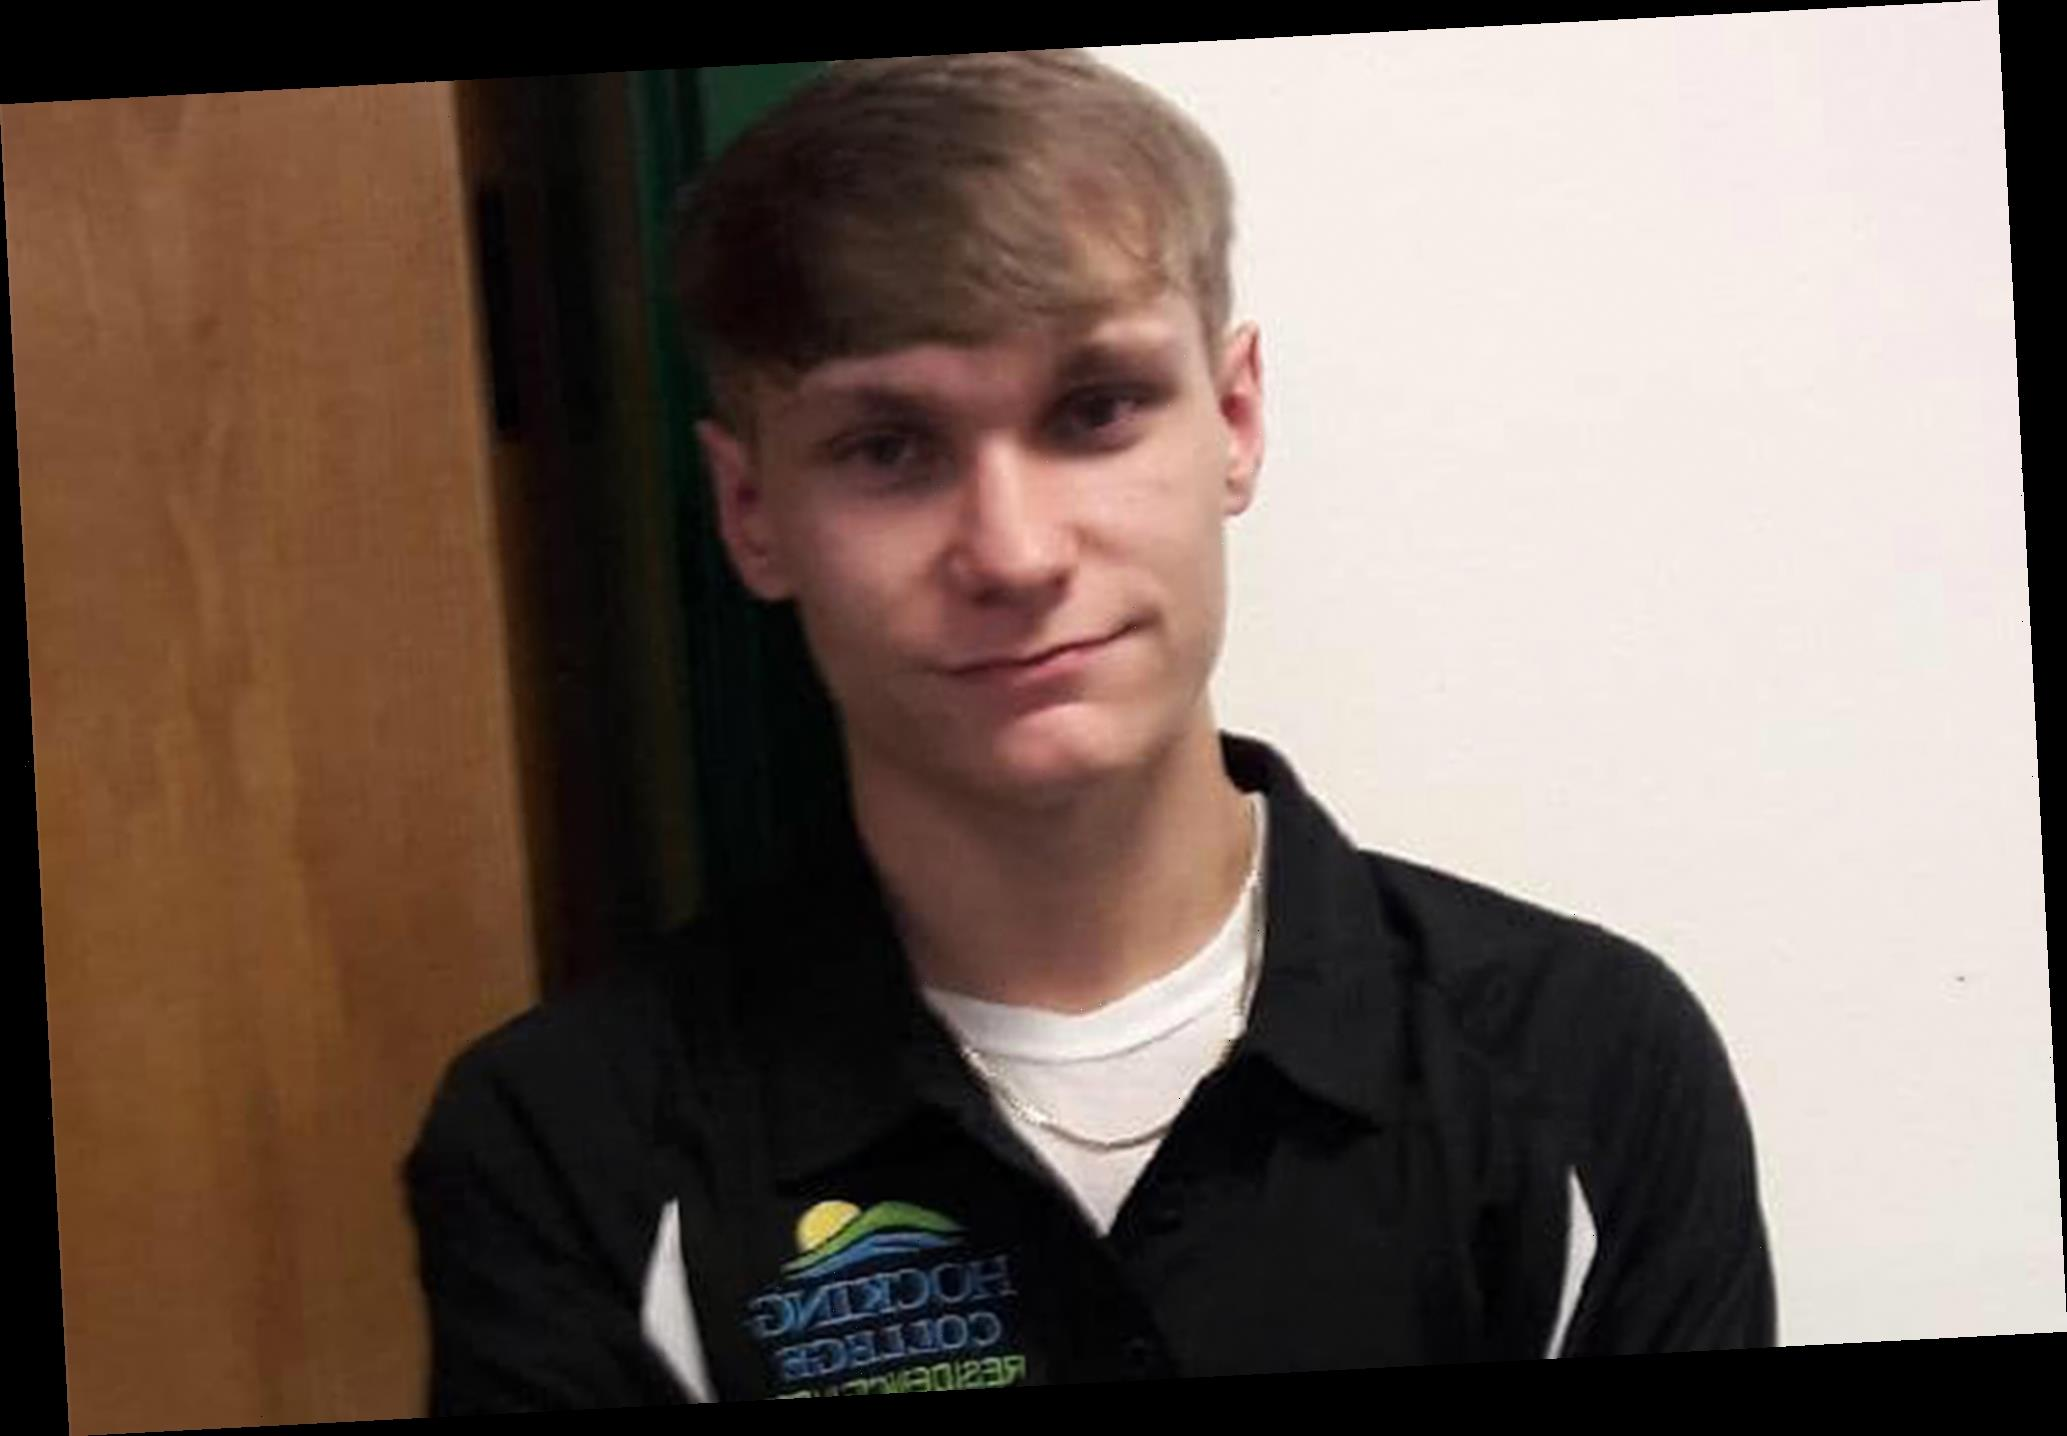 Logan Lewis, Hocking College student, dies from severe allergic reaction to milk